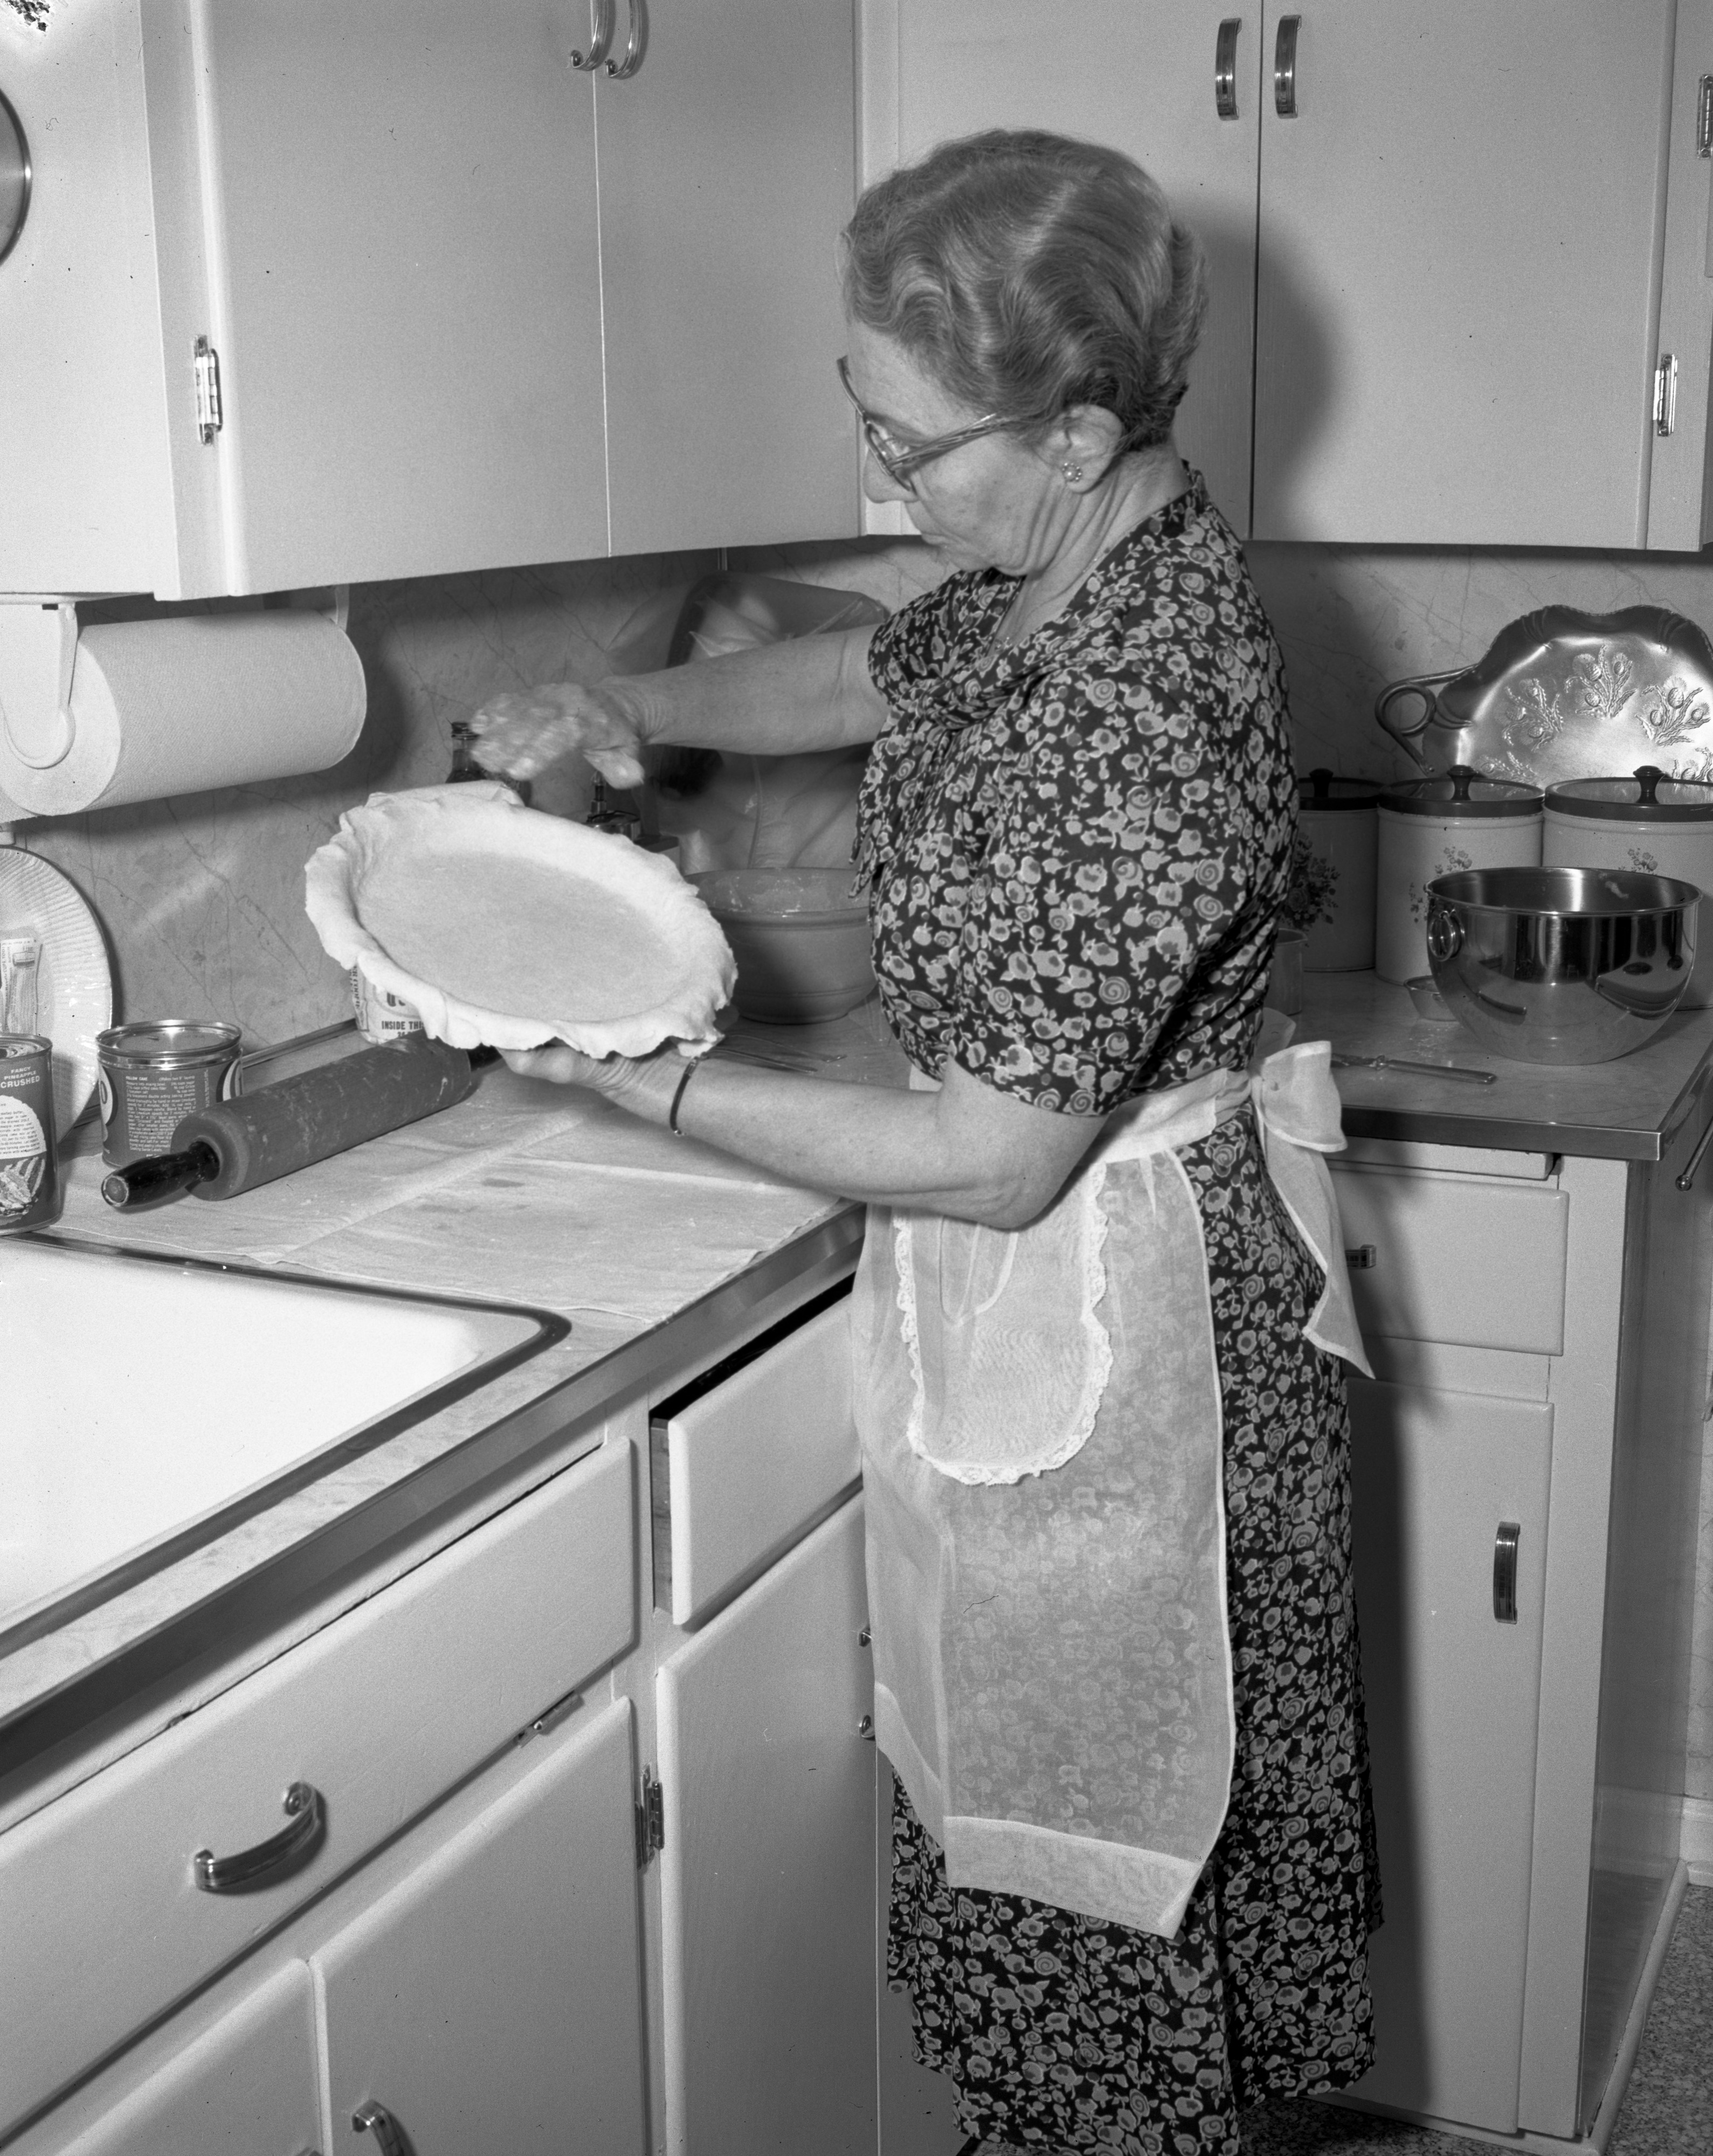 Mrs. Glenn Groosbeck Bakes Apple Pies for Ypsilanti United Church Women's Bake Sale, April 1961 image